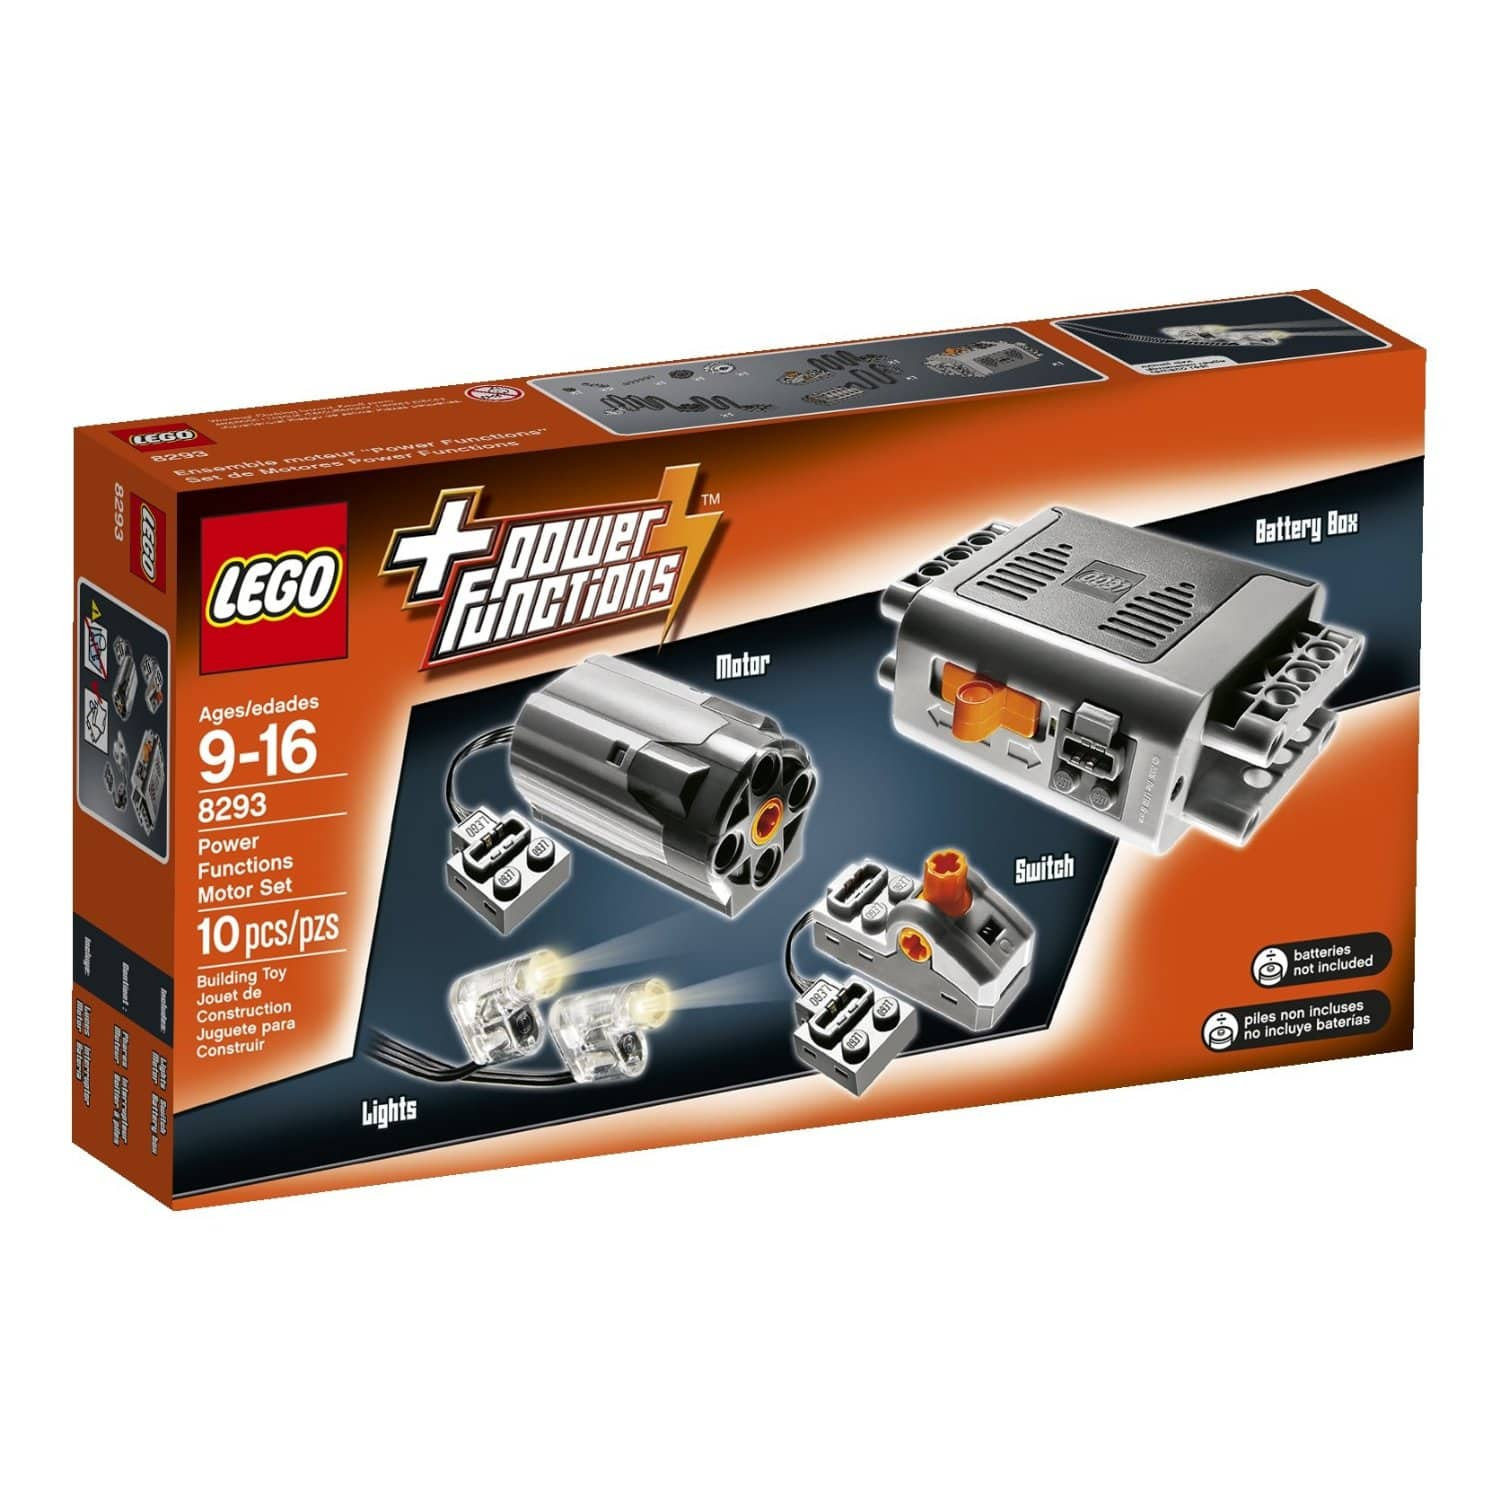 LEGO Technic Power Function Accessory Box  $25